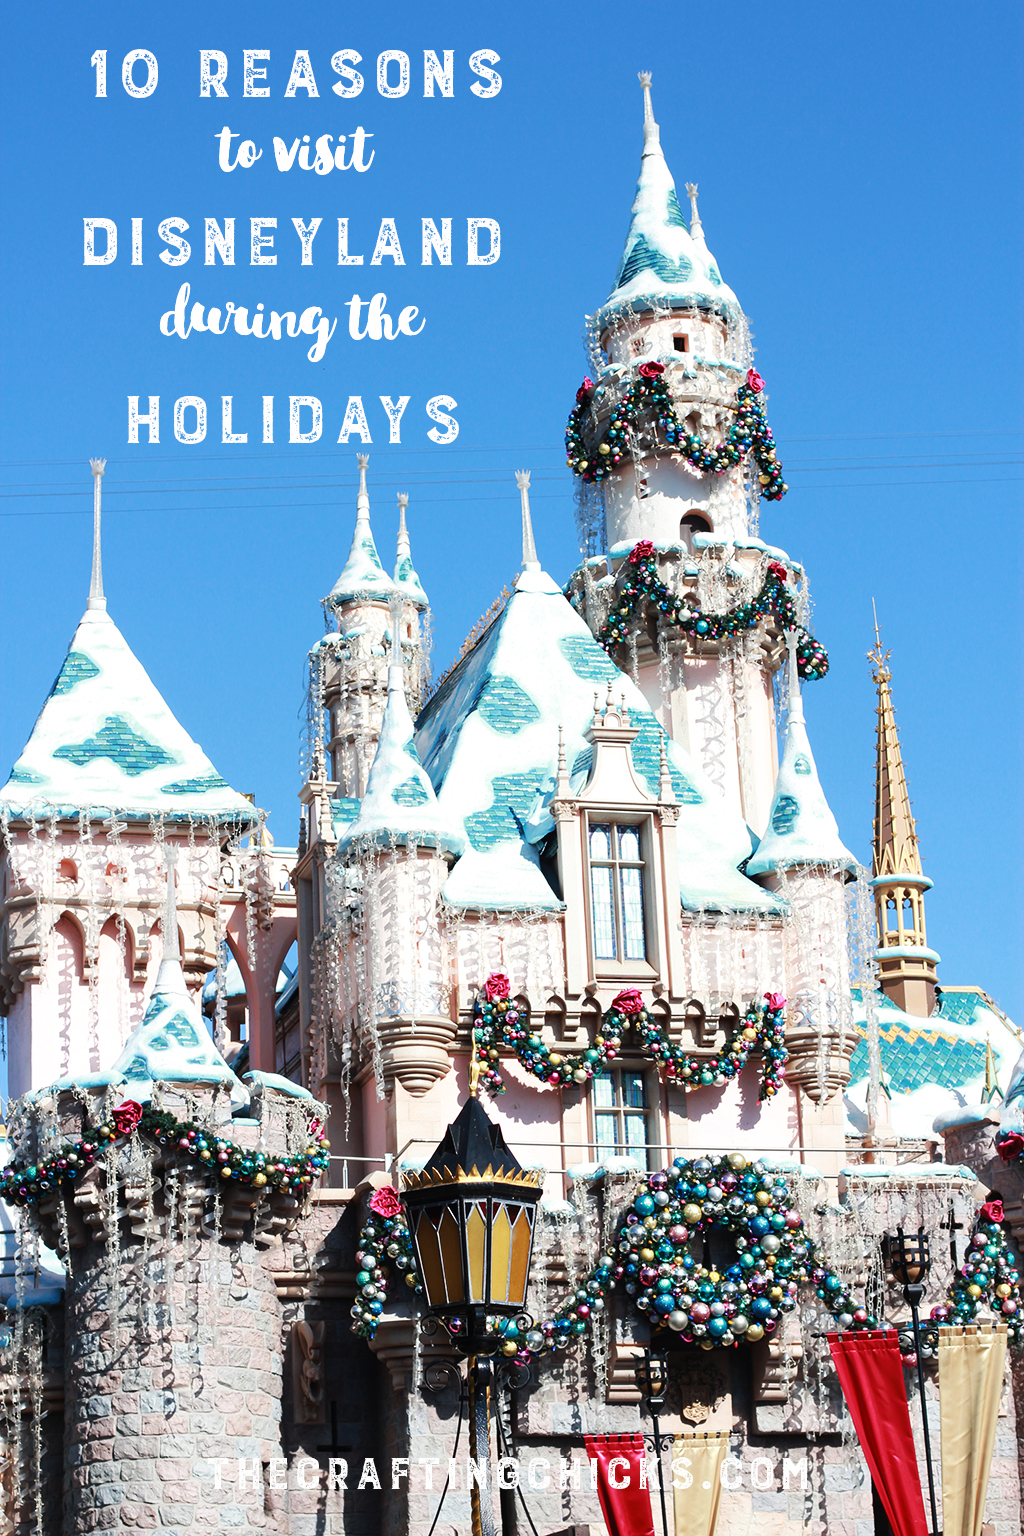 10 Reasons to Visit Disneyland During the Holidays